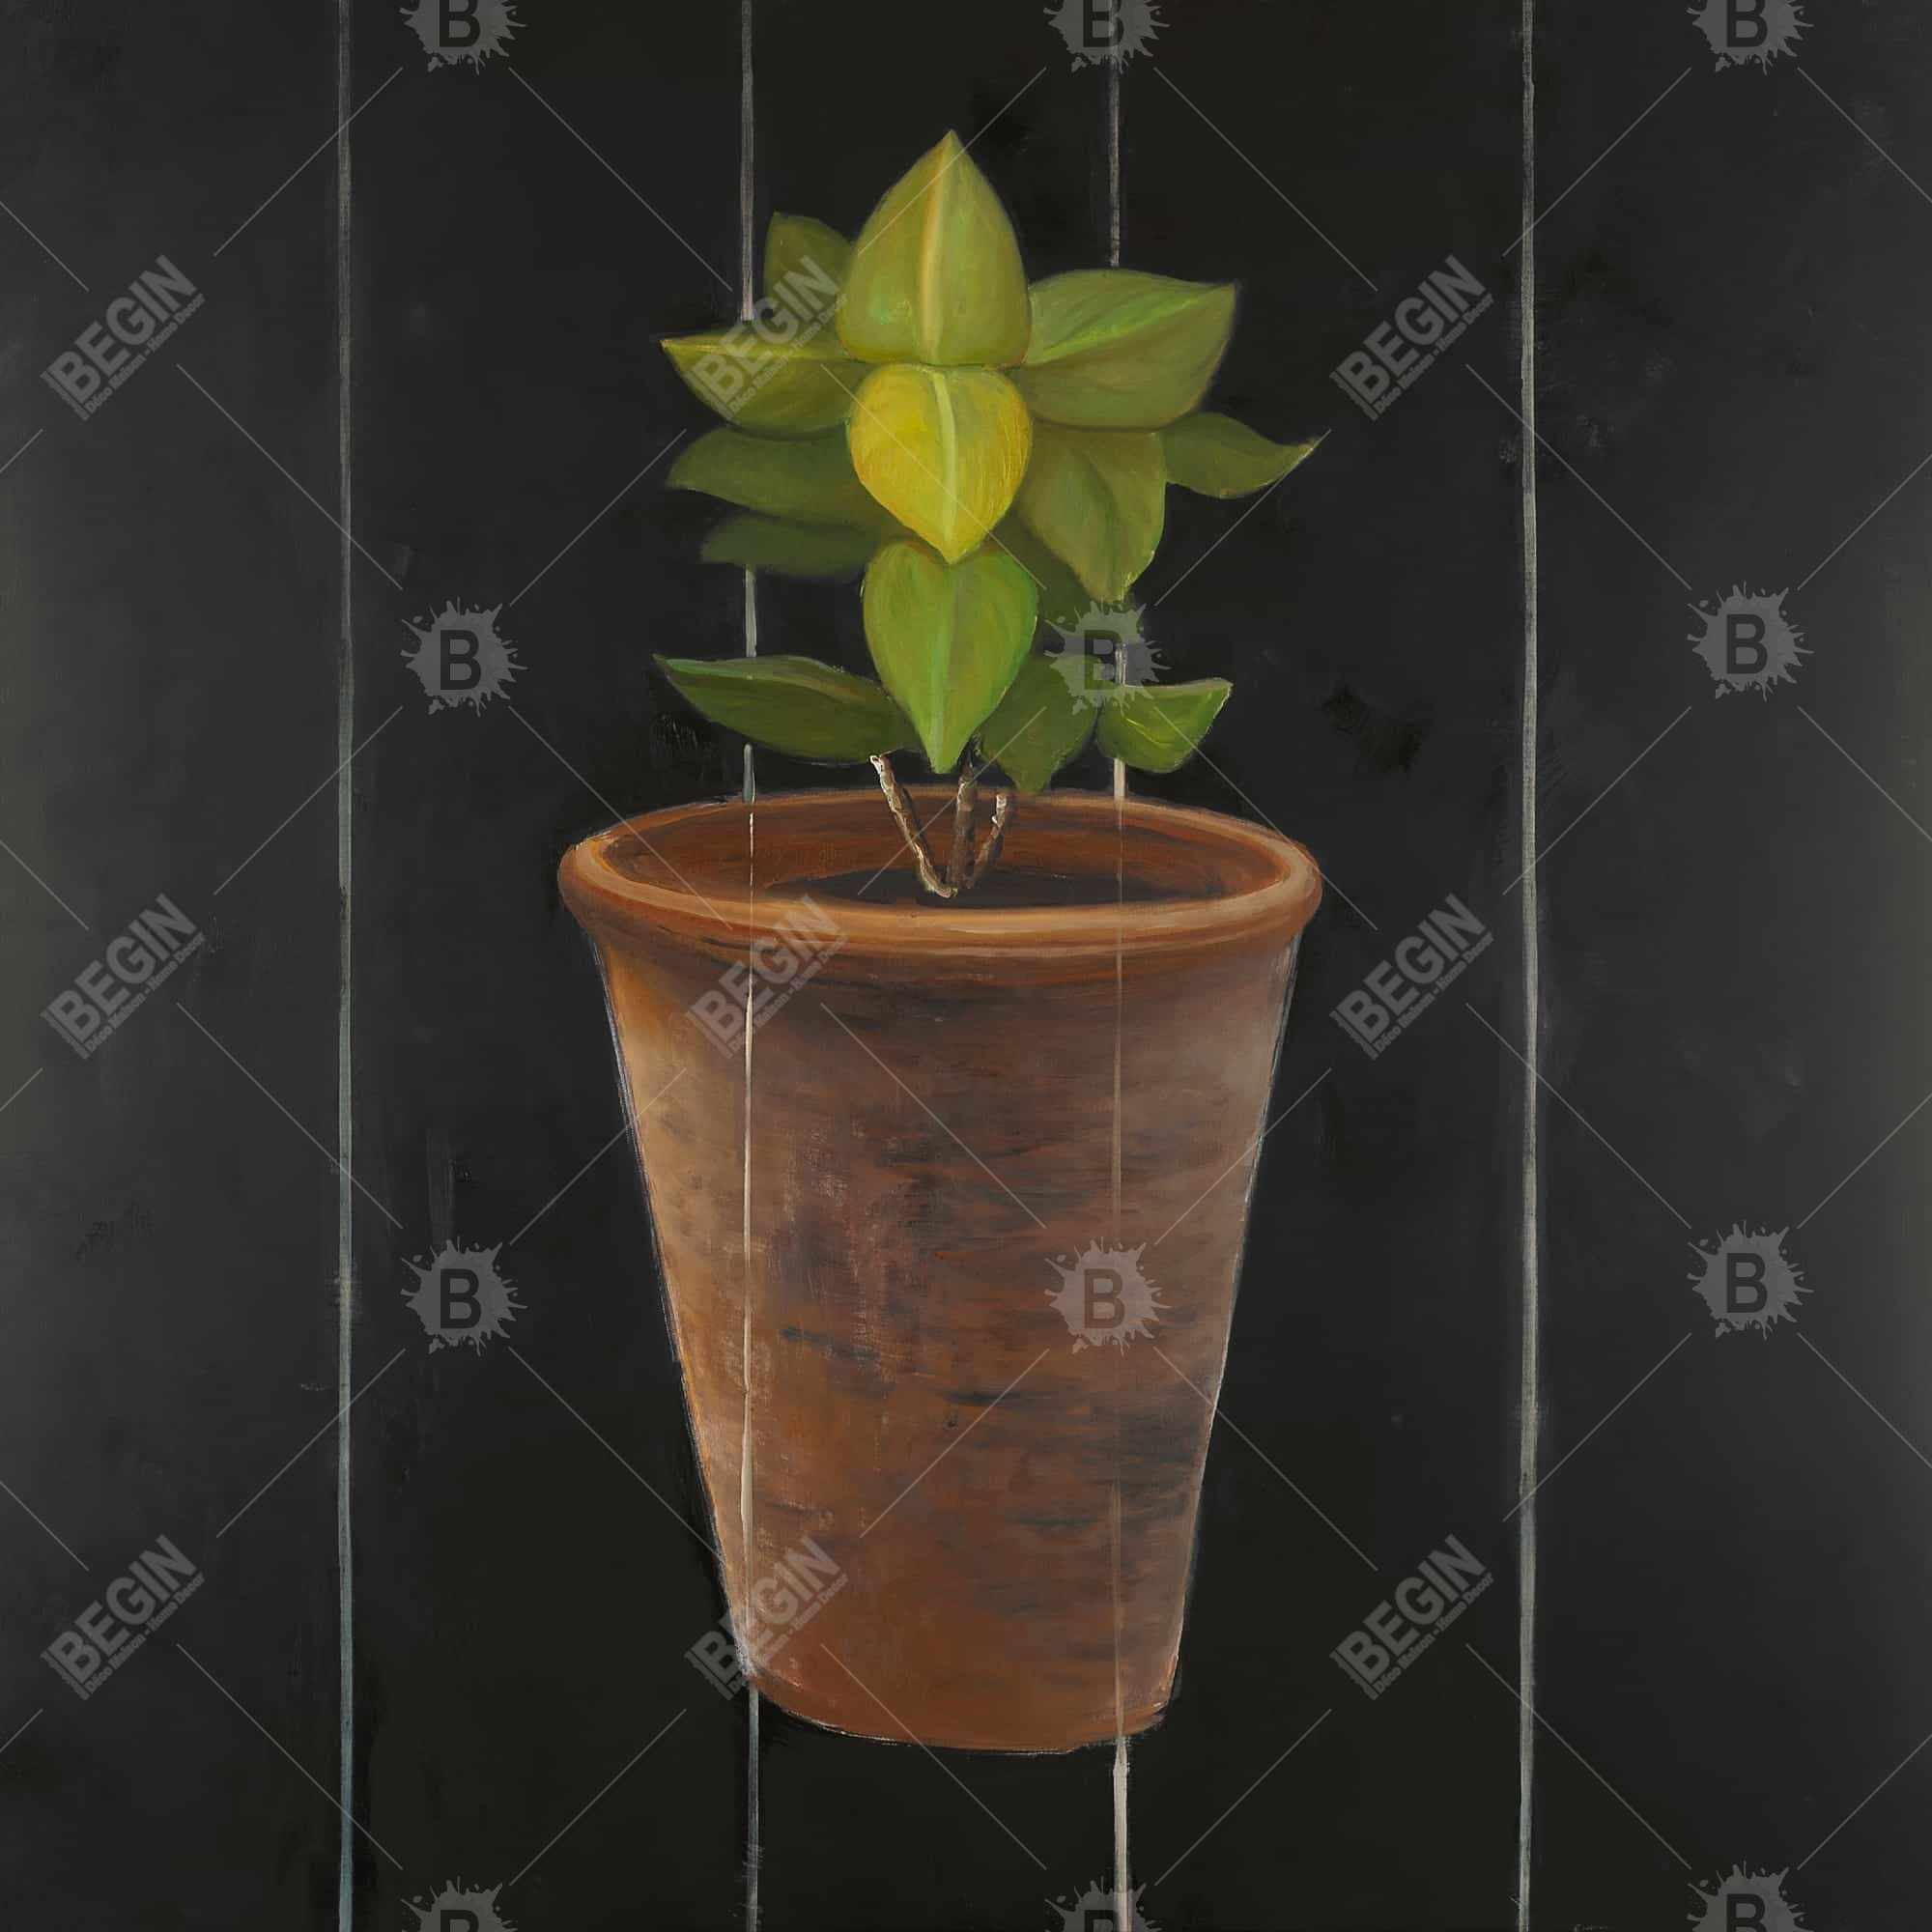 Plant of bay leaves